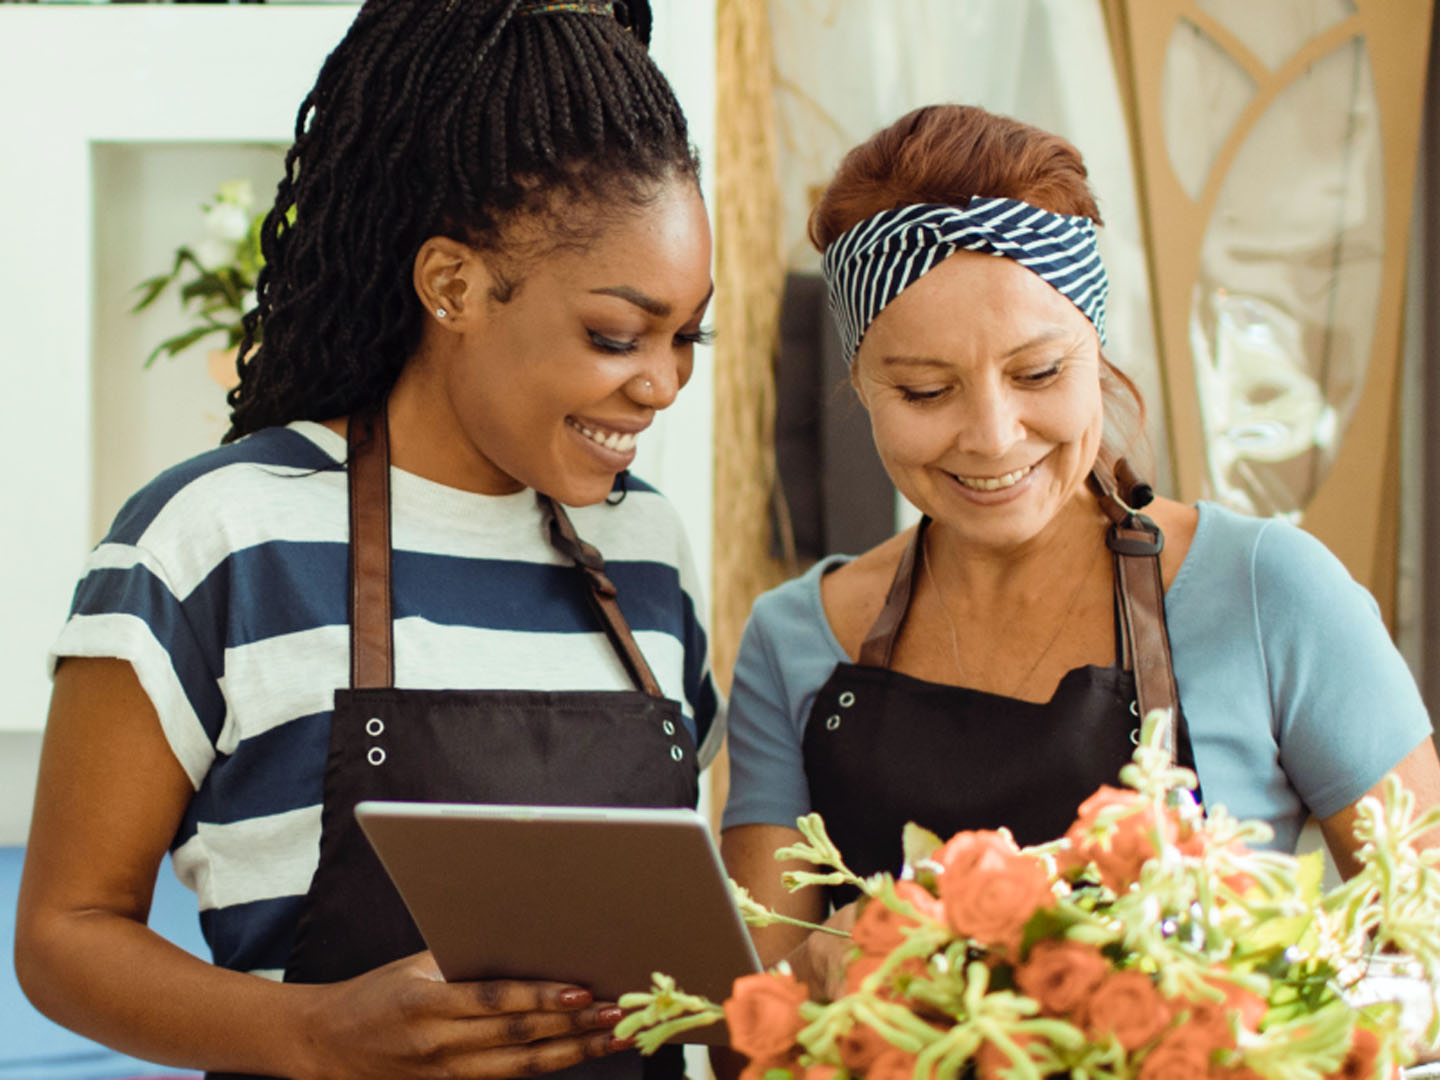 Two women wearing aprons looking at tablet.